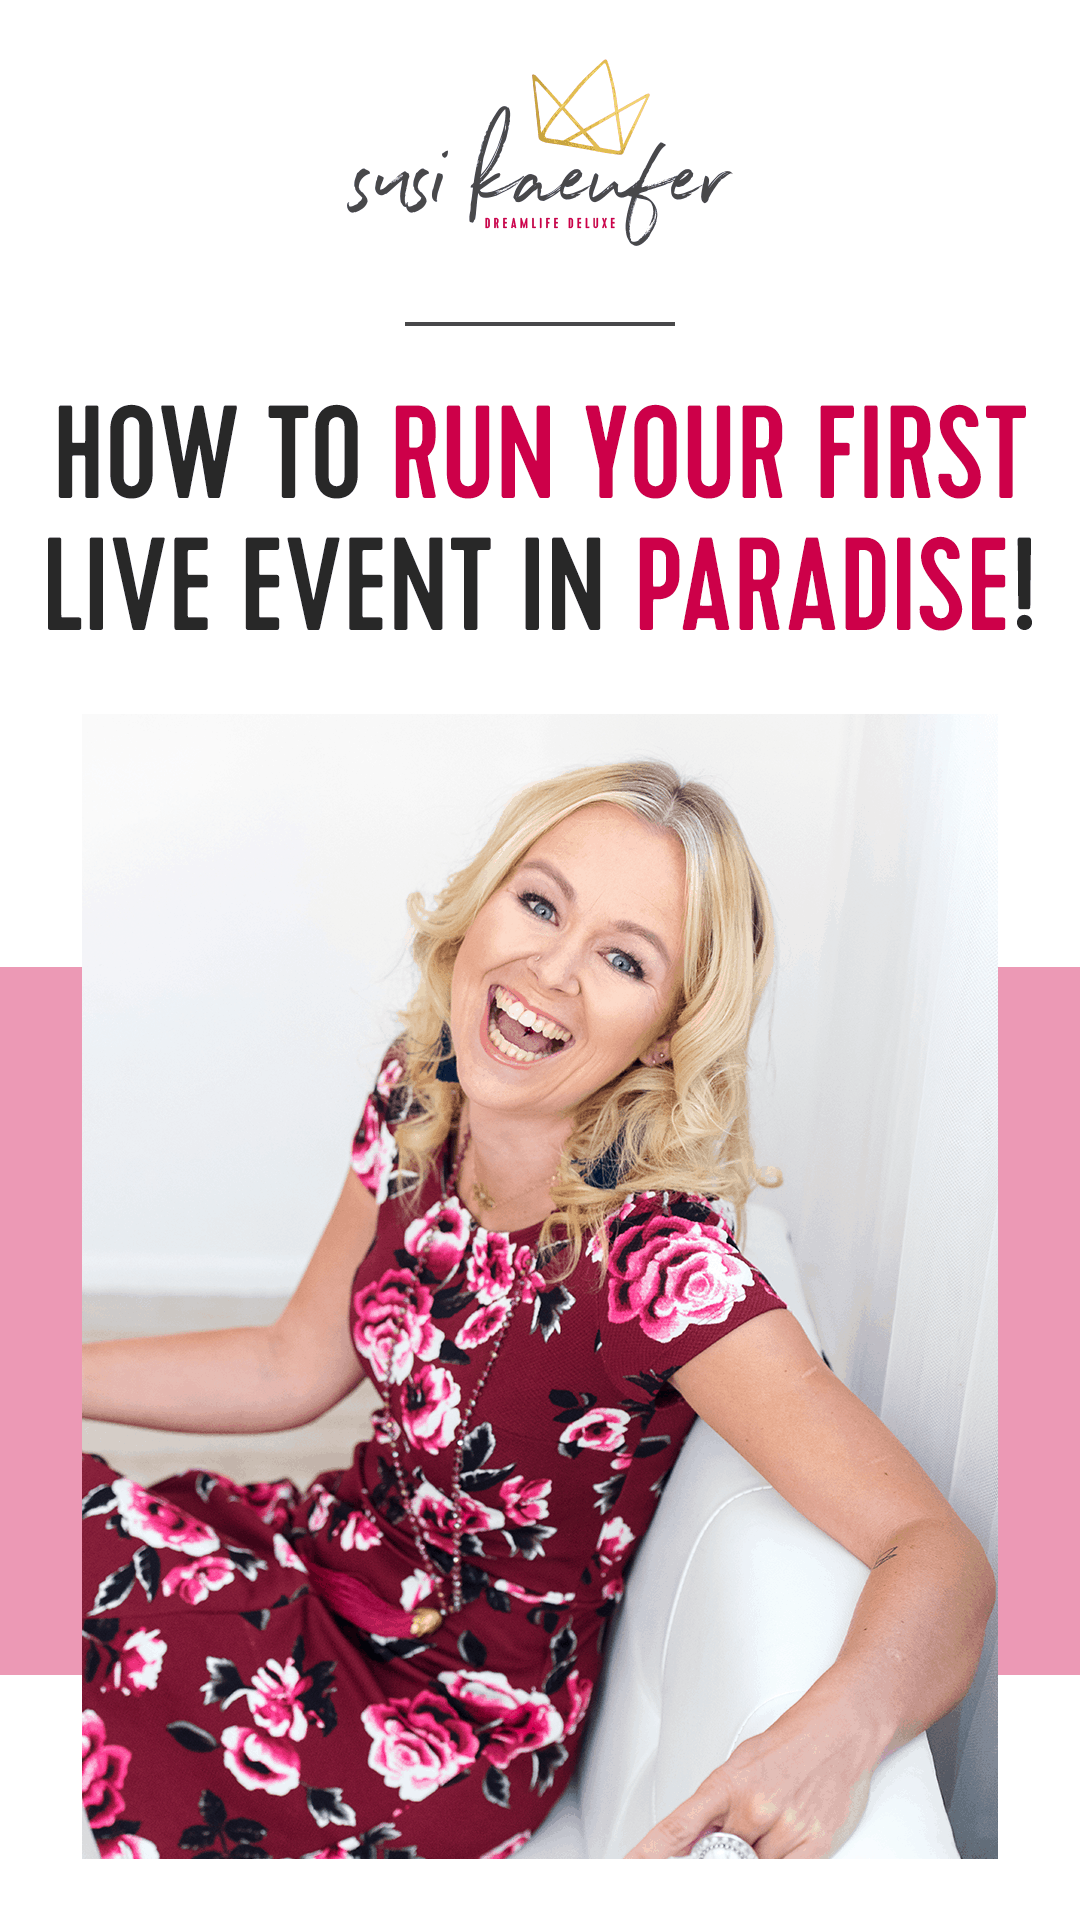 How to run your first live event in Paradise